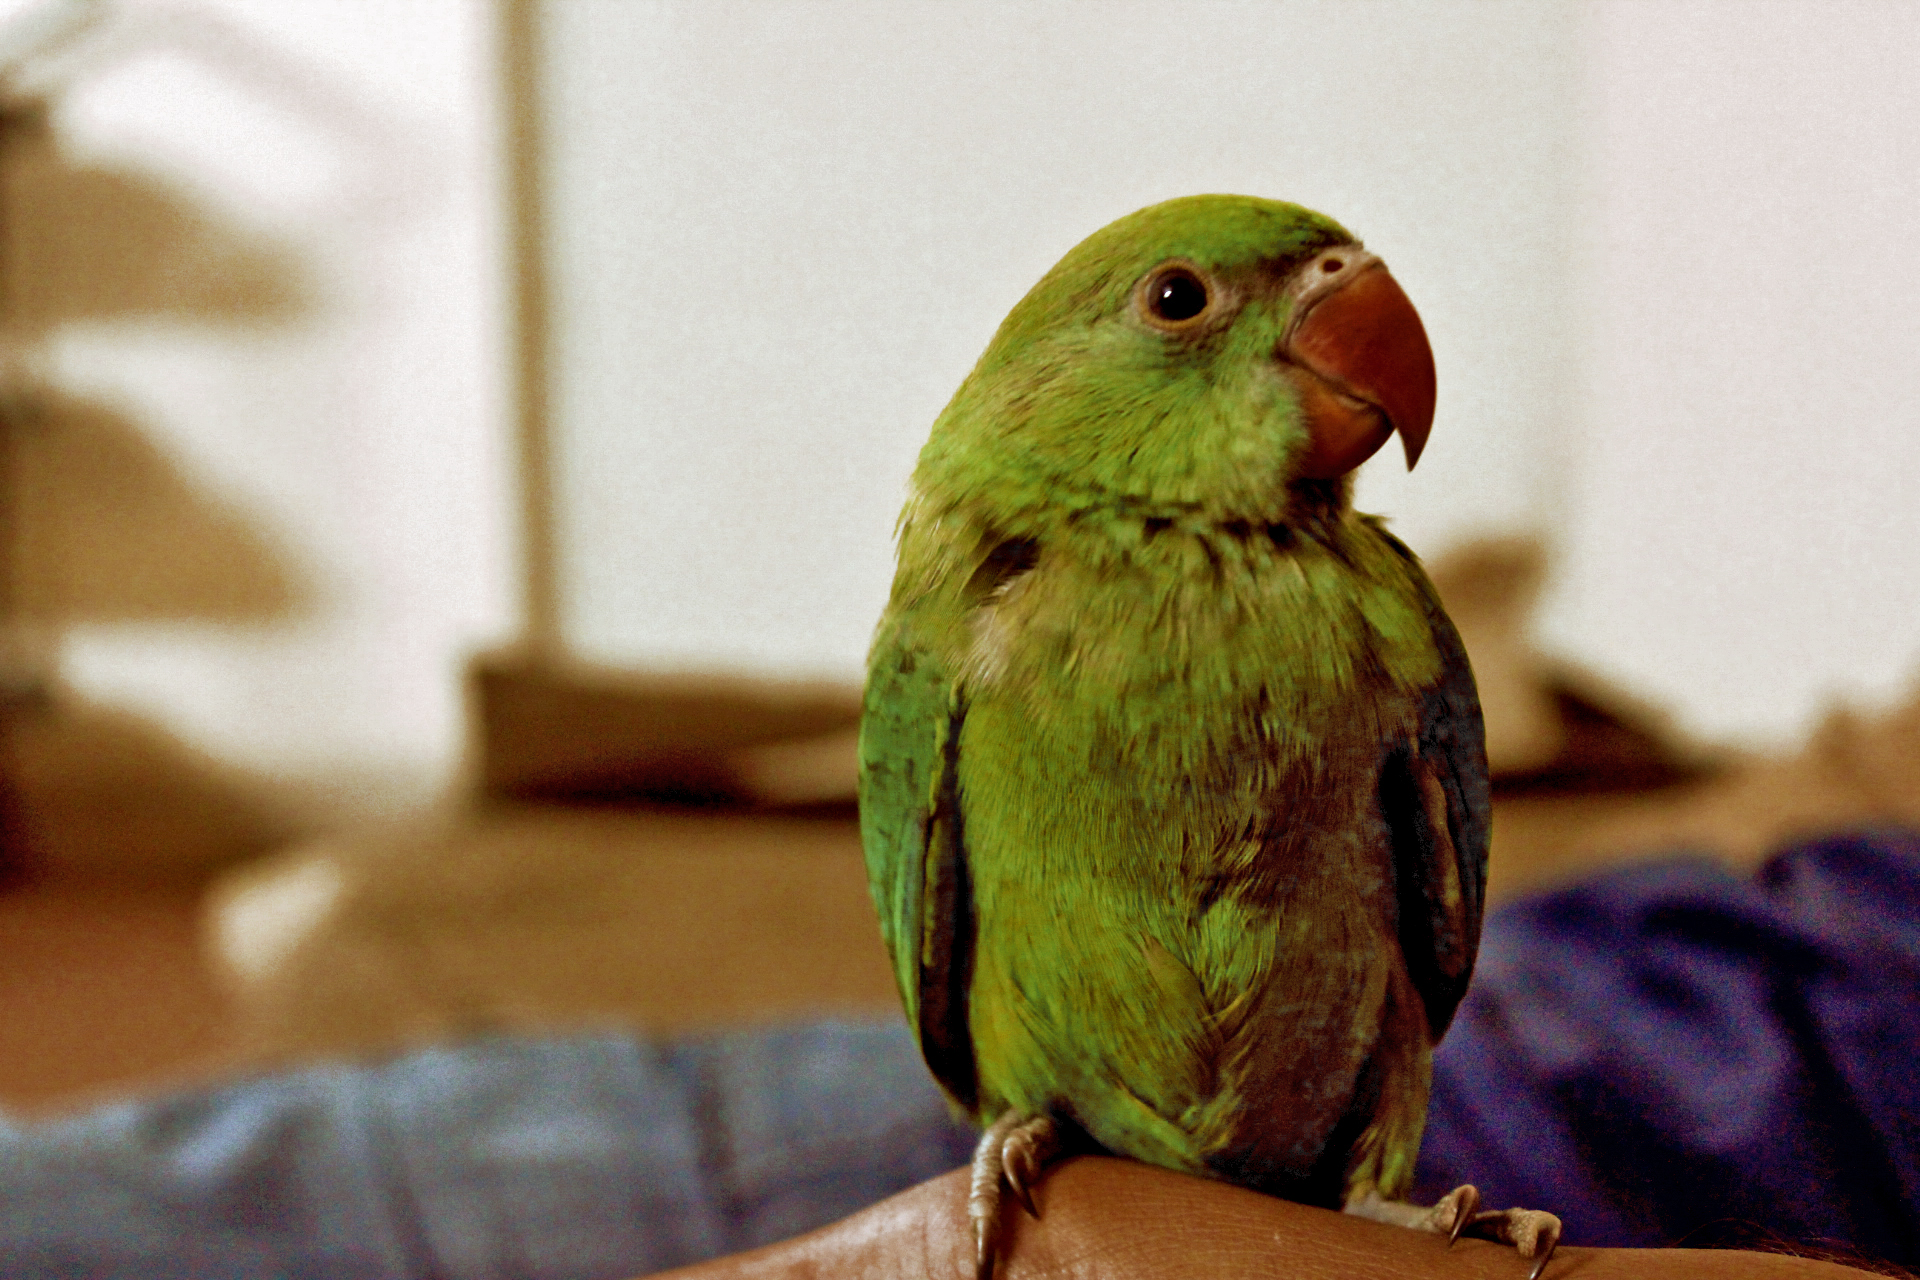 Animal Communication with bird